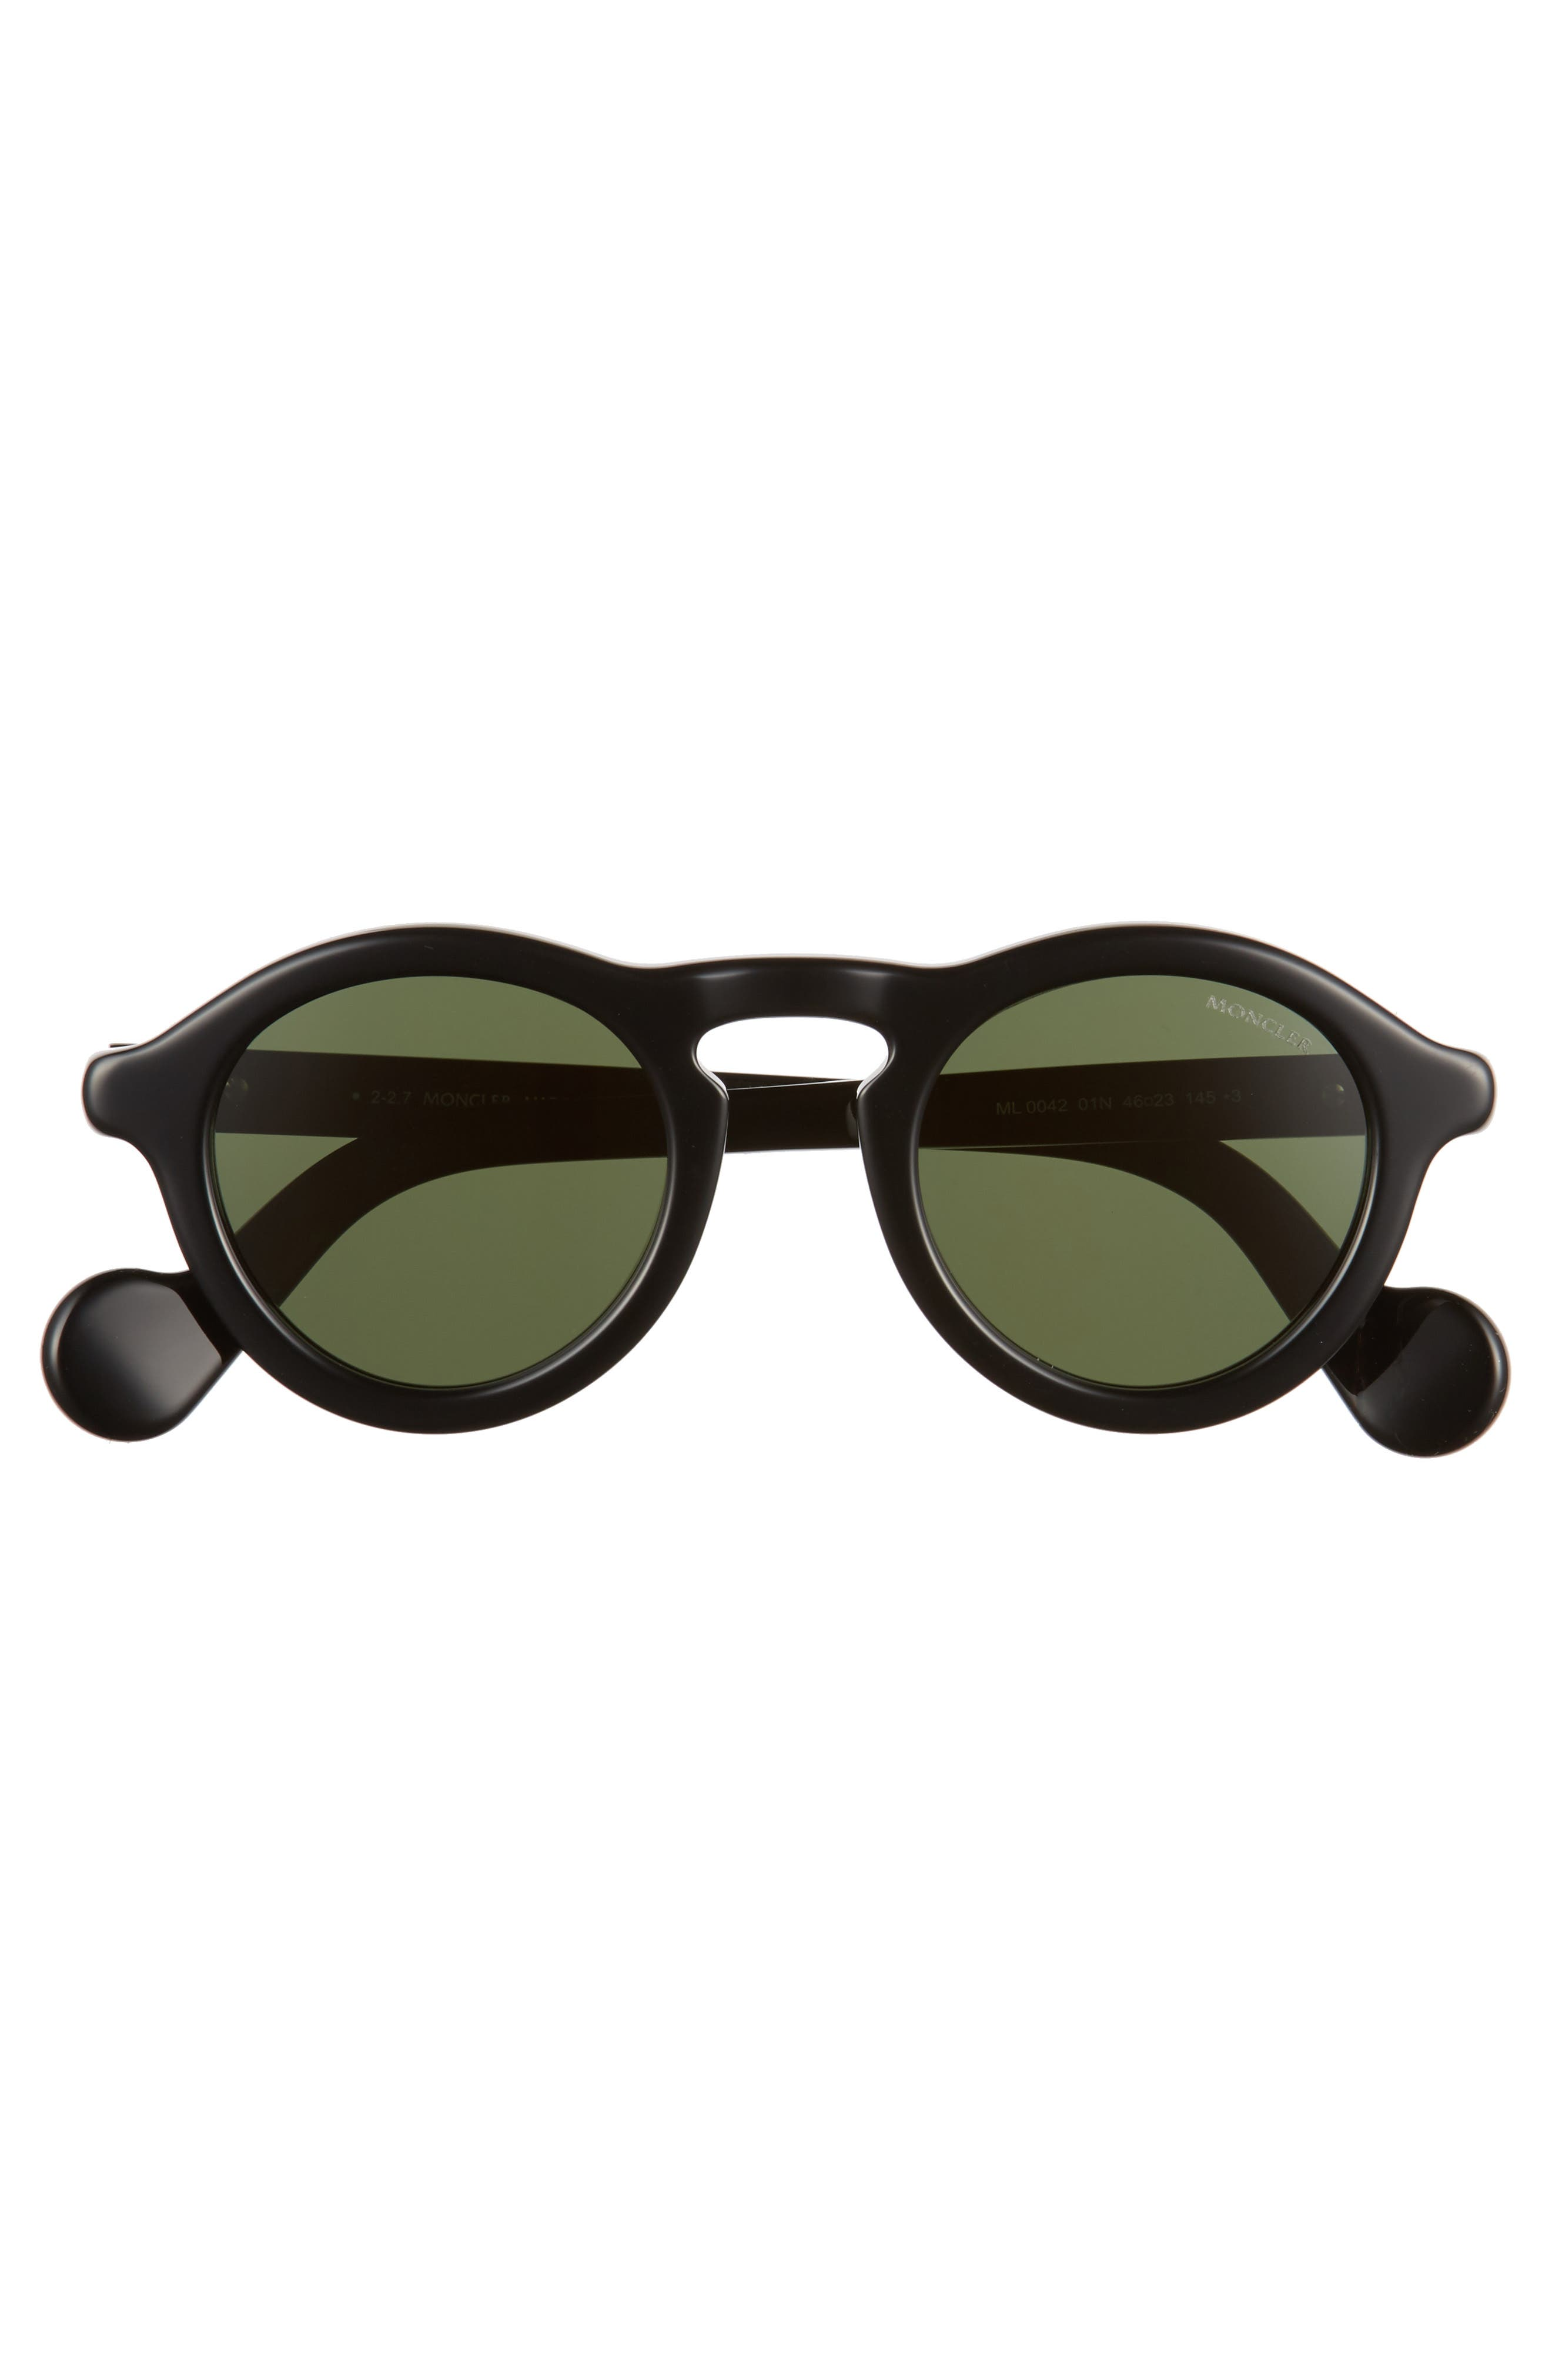 46mm Round Sunglasses,                             Alternate thumbnail 3, color,                             BLACK/ VINTAGE GREEN